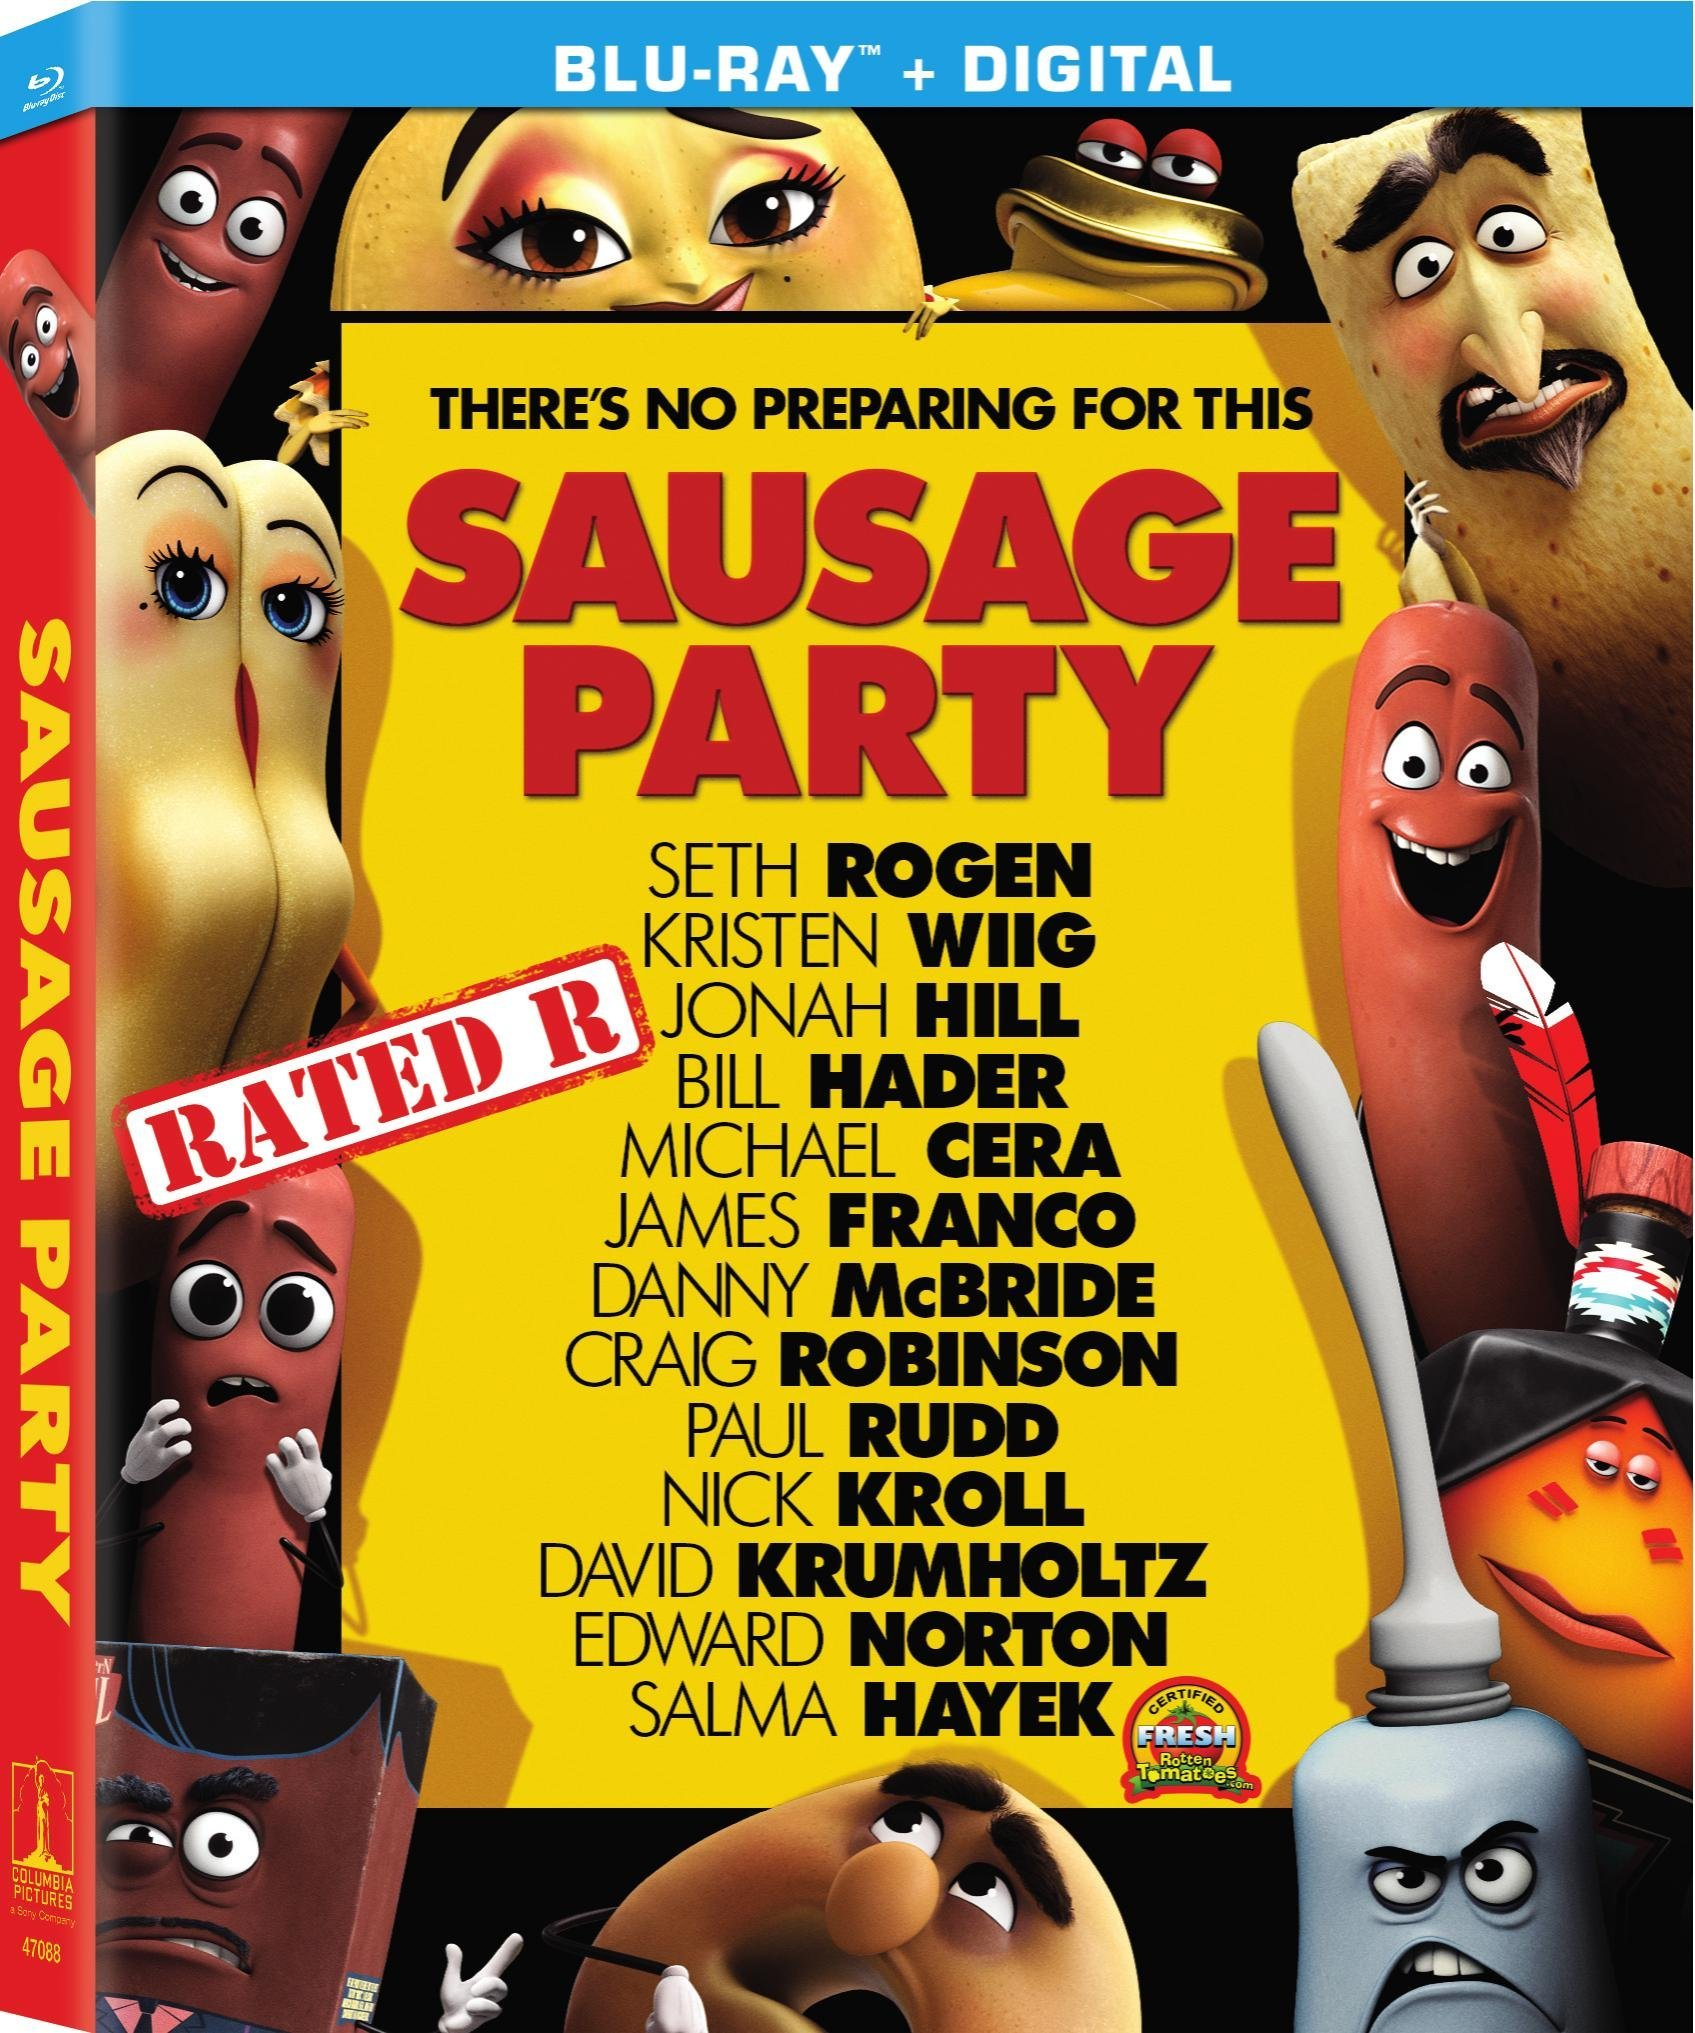 Sausage Party (2016) poster image